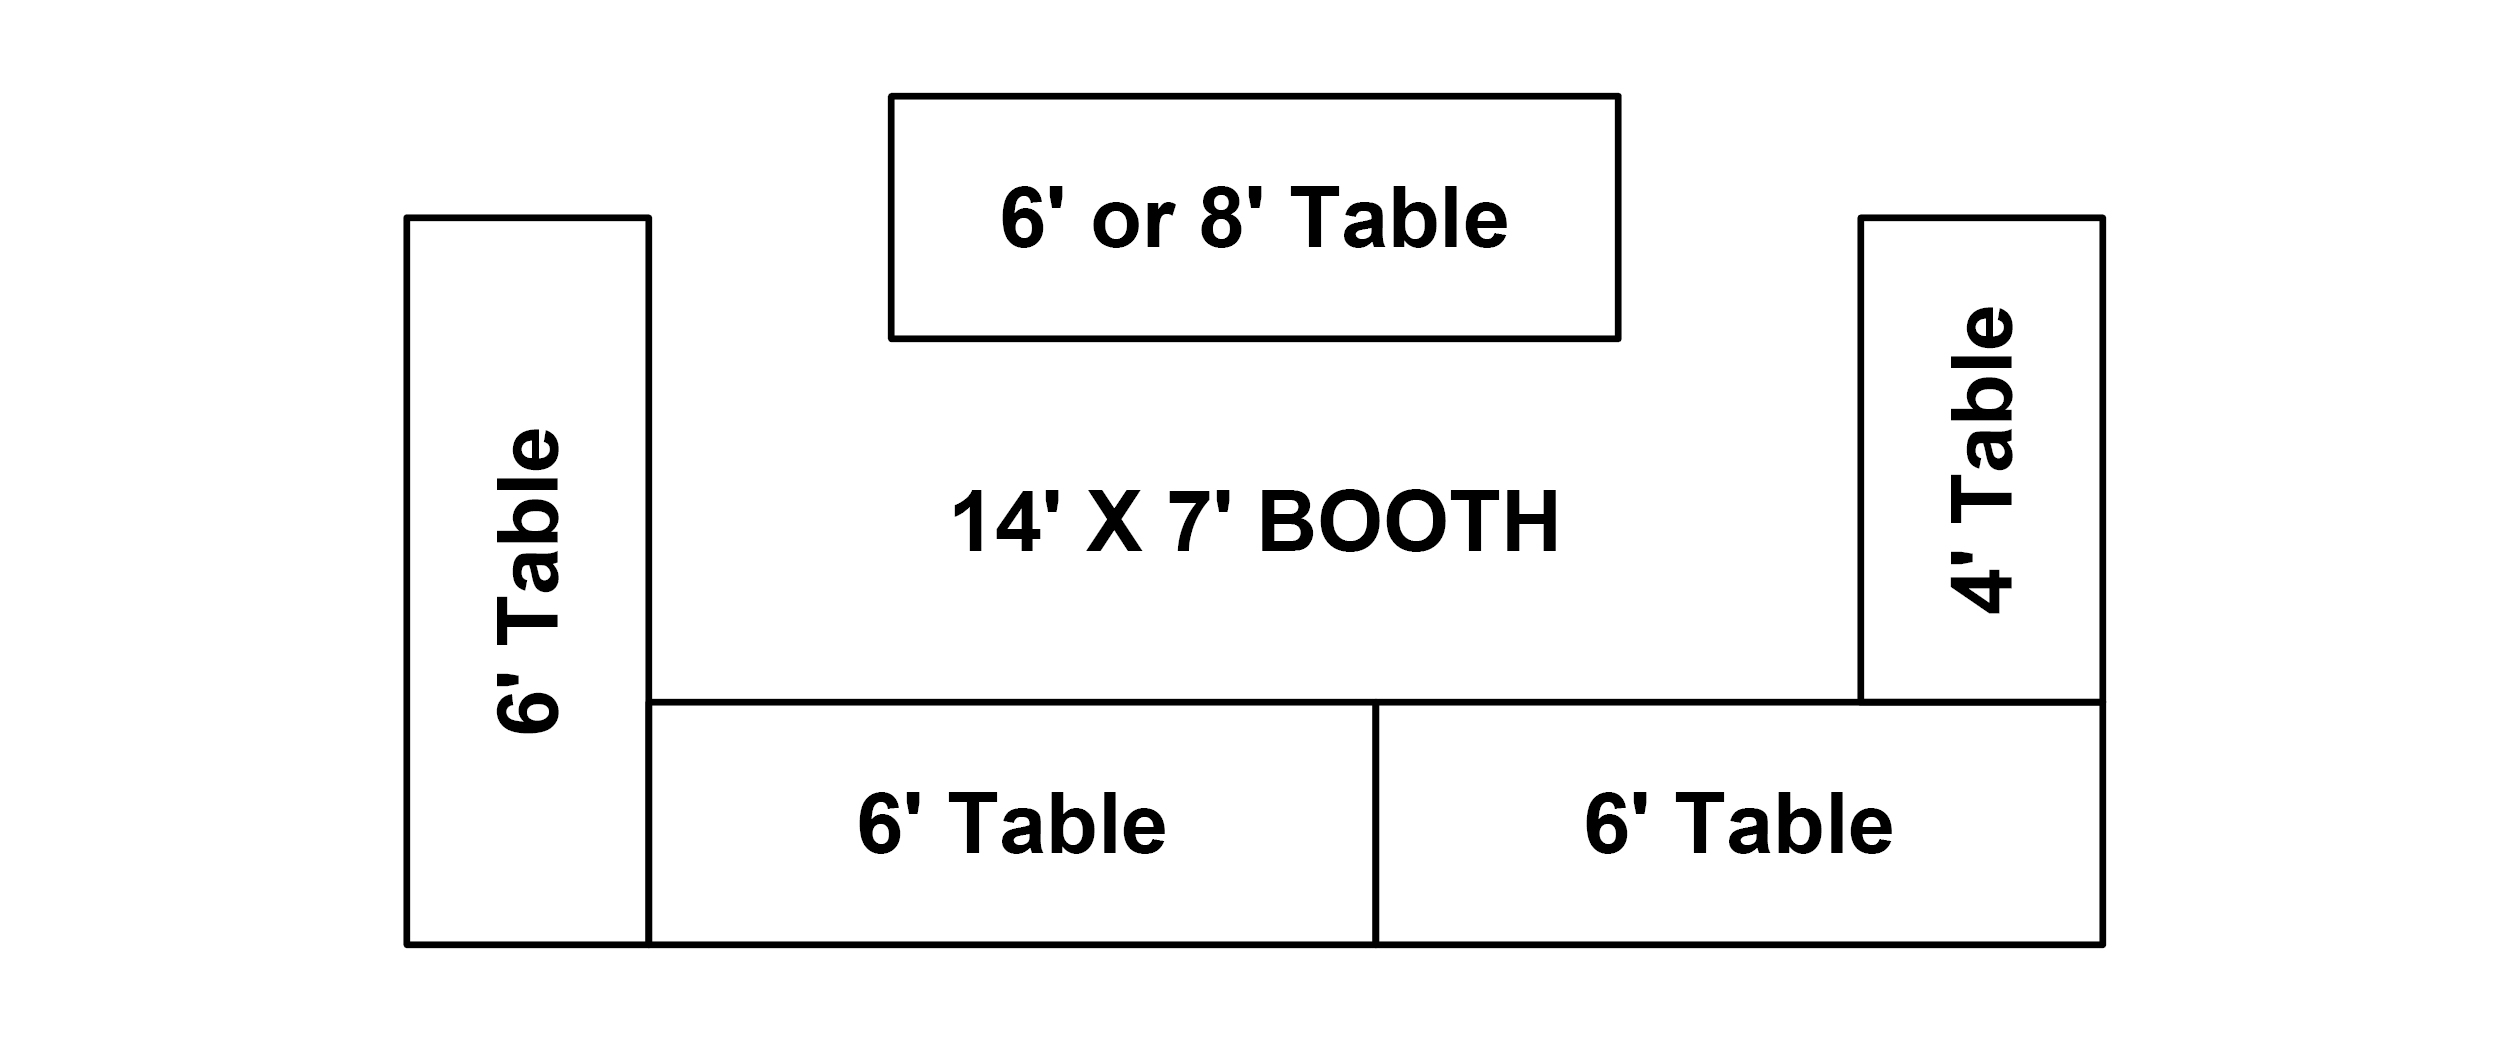 14' x 7'* Booth   Comes with 4 – 6' tables and 1 – 4' table, 750 watts of electricity, table skirts**, table covers** and 2 chairs. Please note, if you order any showcases(s) you will lose a table(s).